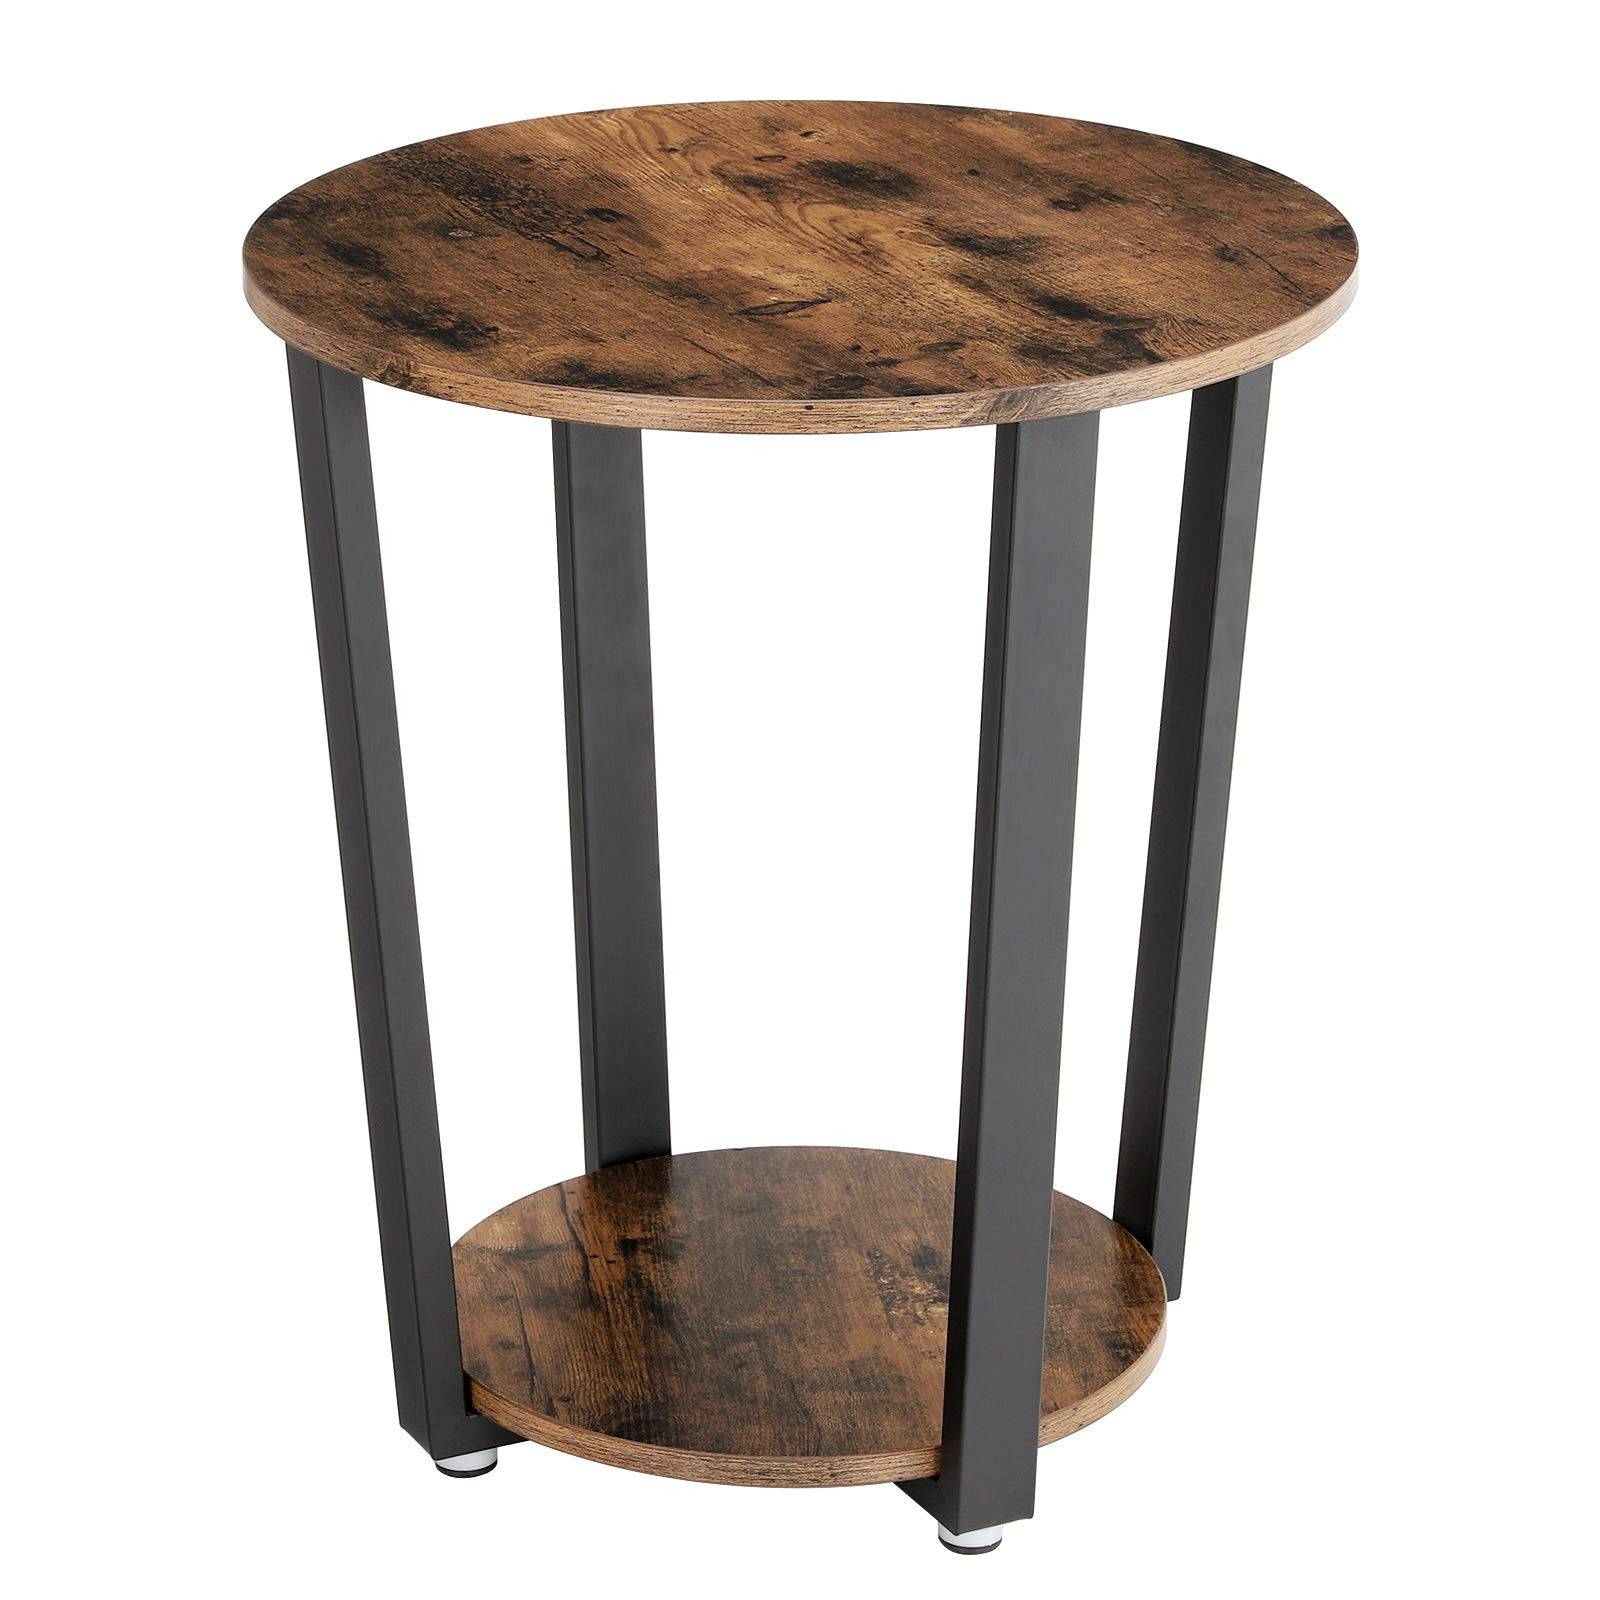 VASAGLE Industrial End Table, Metal Side Table, Round Sofa Table with Storage Rack, Stable and Sturdy Construction, Easy Assembly, Wood Look Accent Furniture with Metal Frame ULET57X by VASAGLE